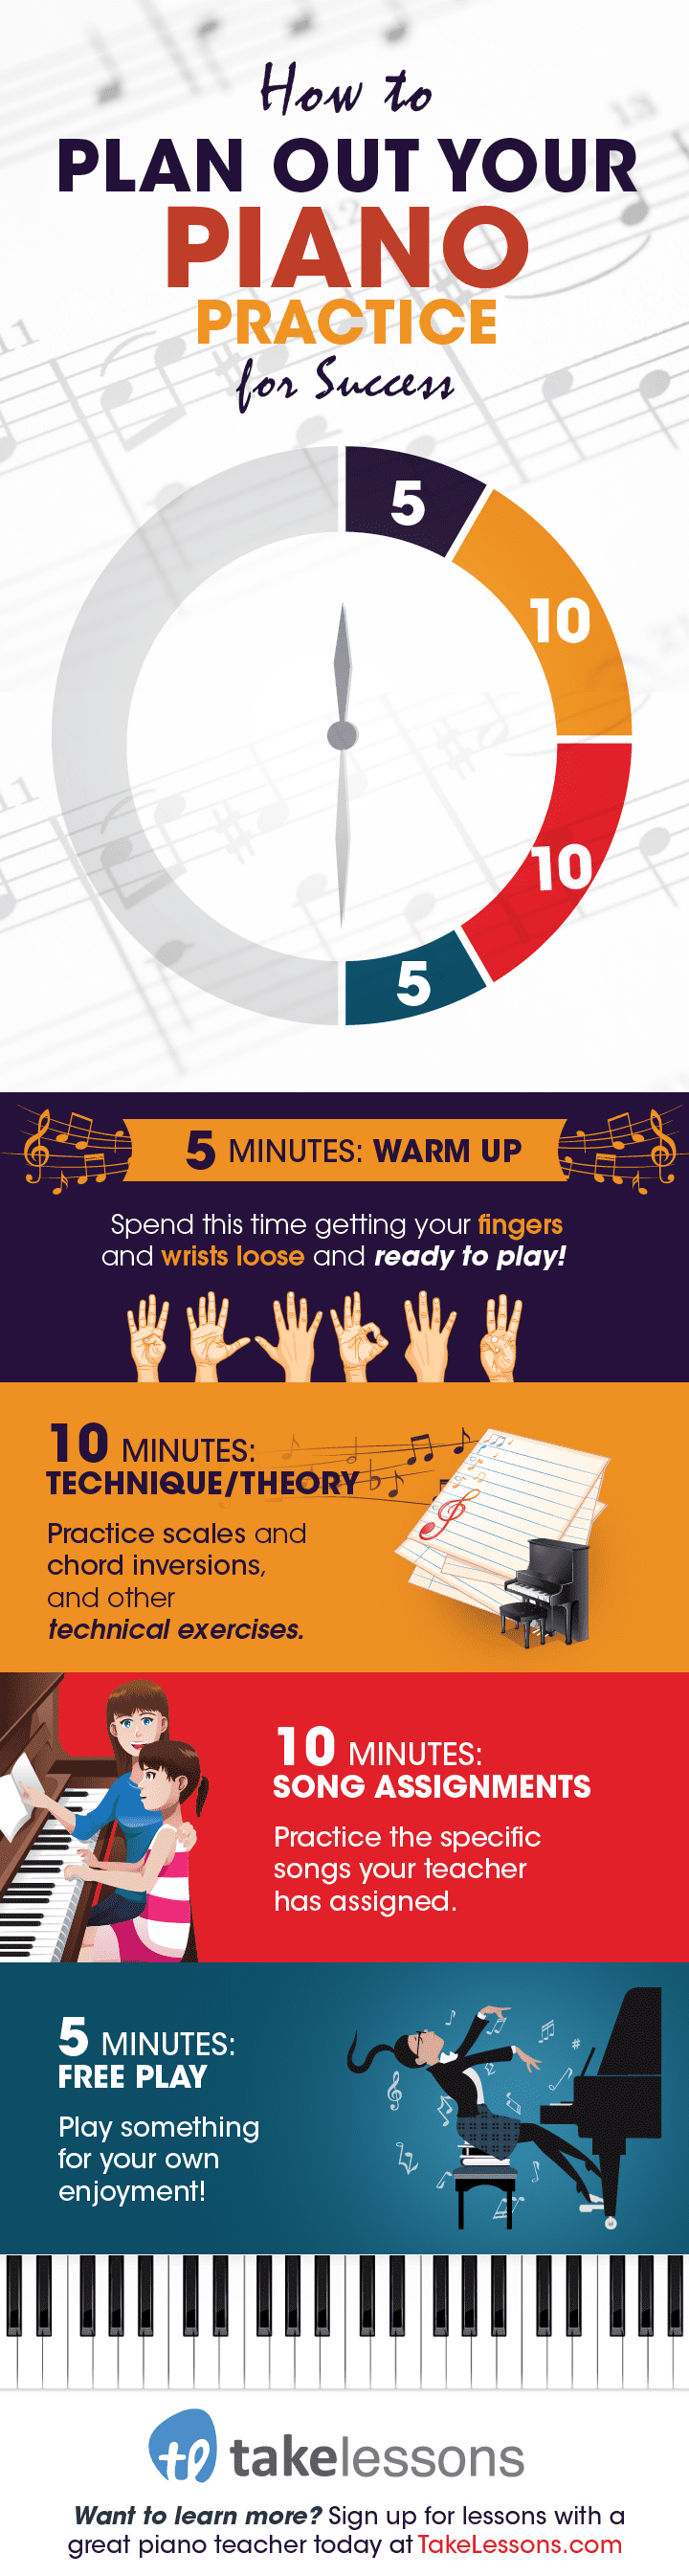 How to Plan Out Your Piano Practice for Success